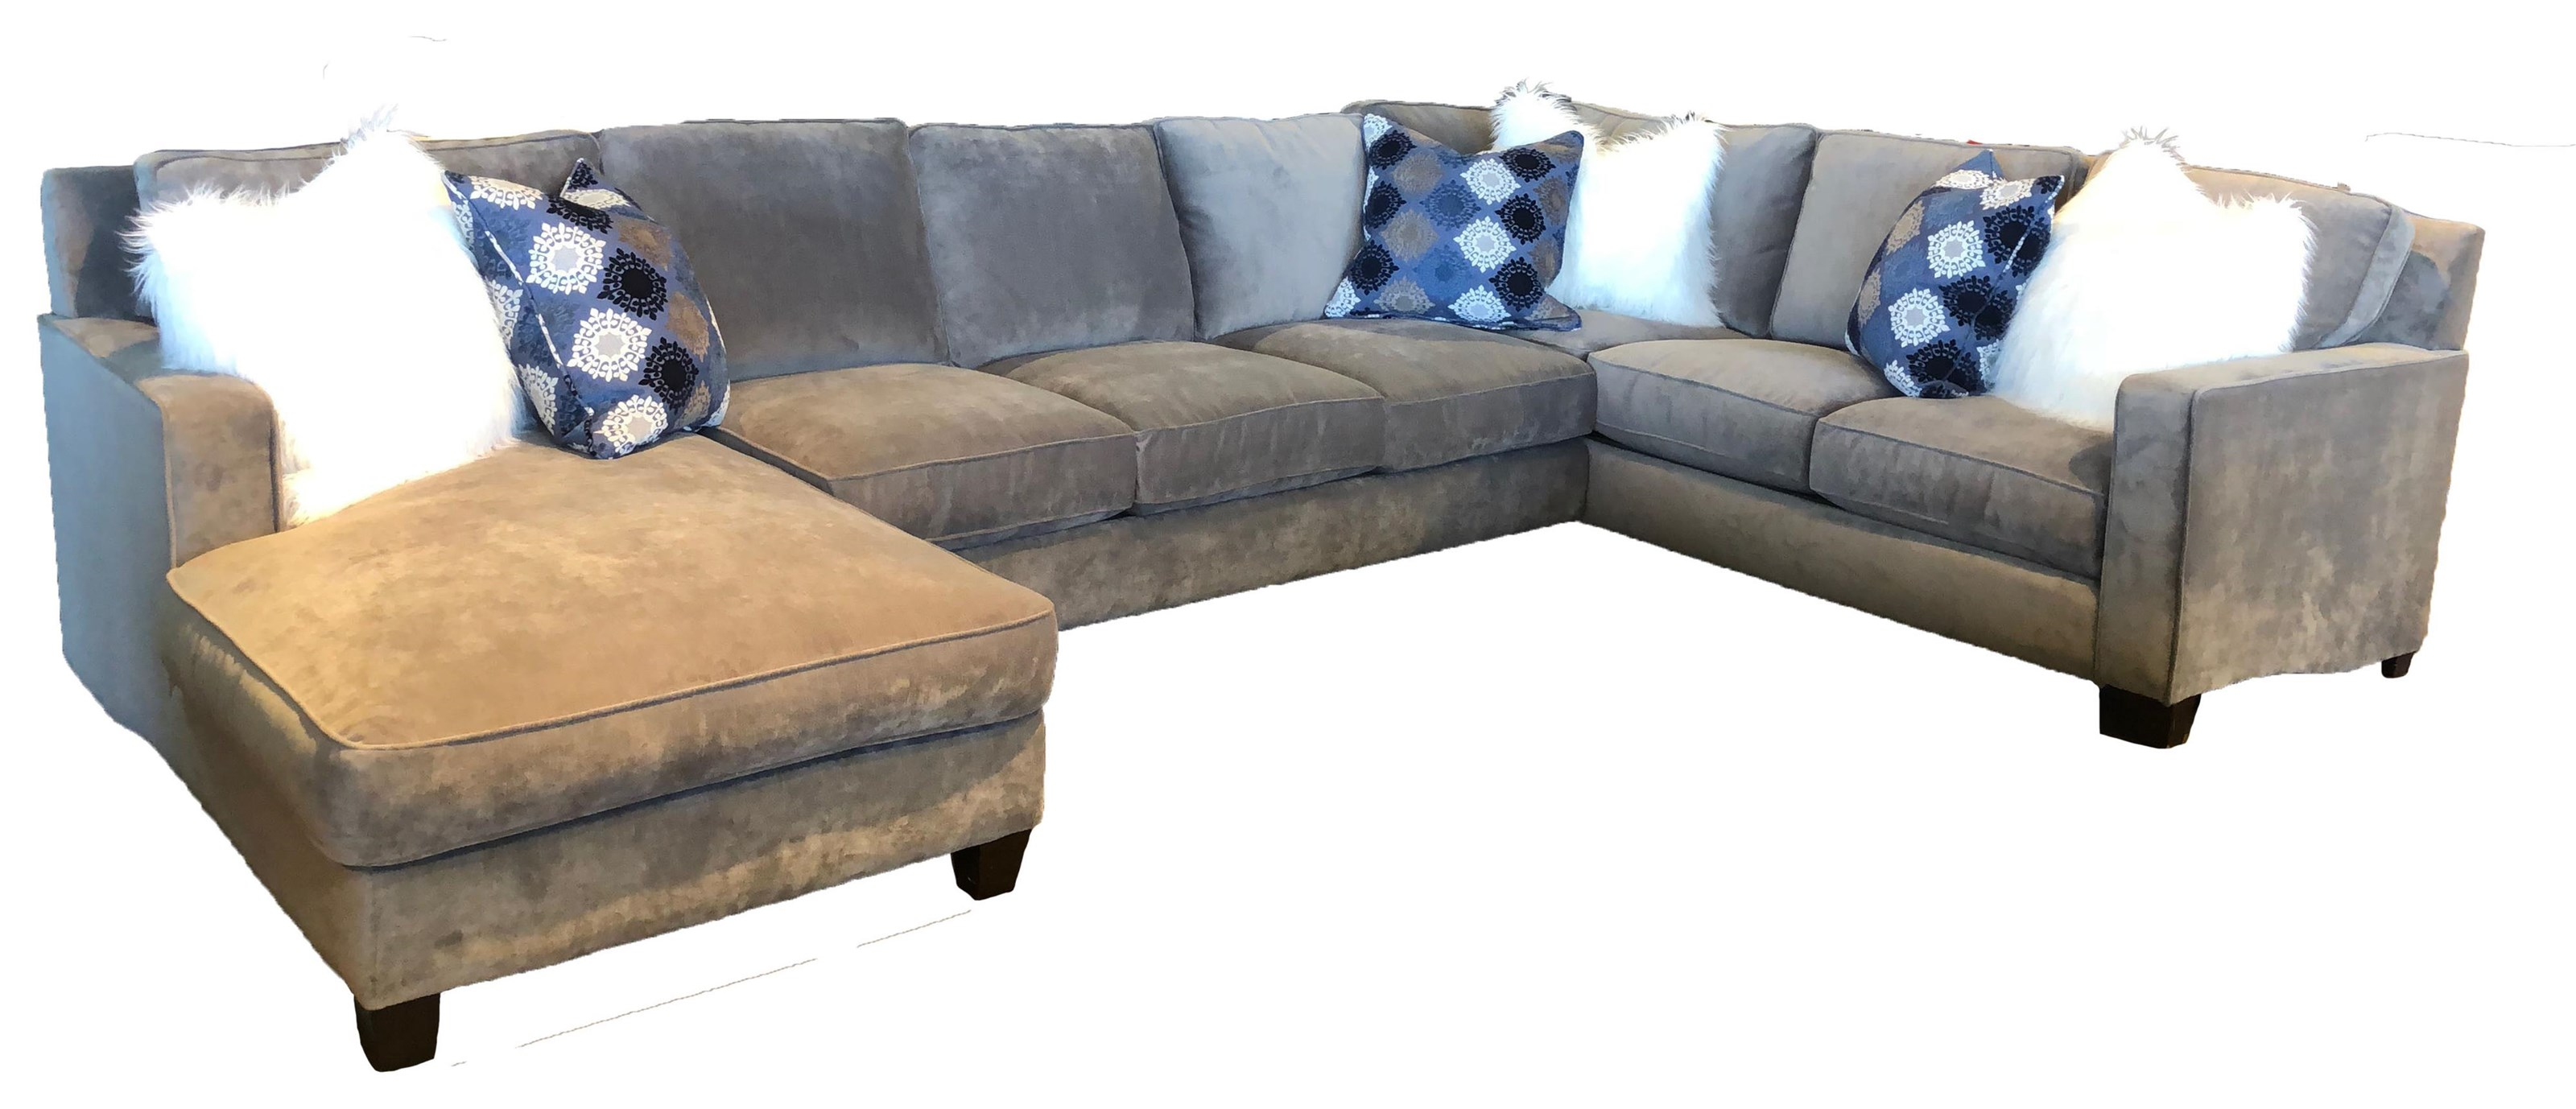 Reeds Trading Company 1000 1000 3 Piece Down Sectional - Item Number: 1000 3 PC Sectional-RAF Tux